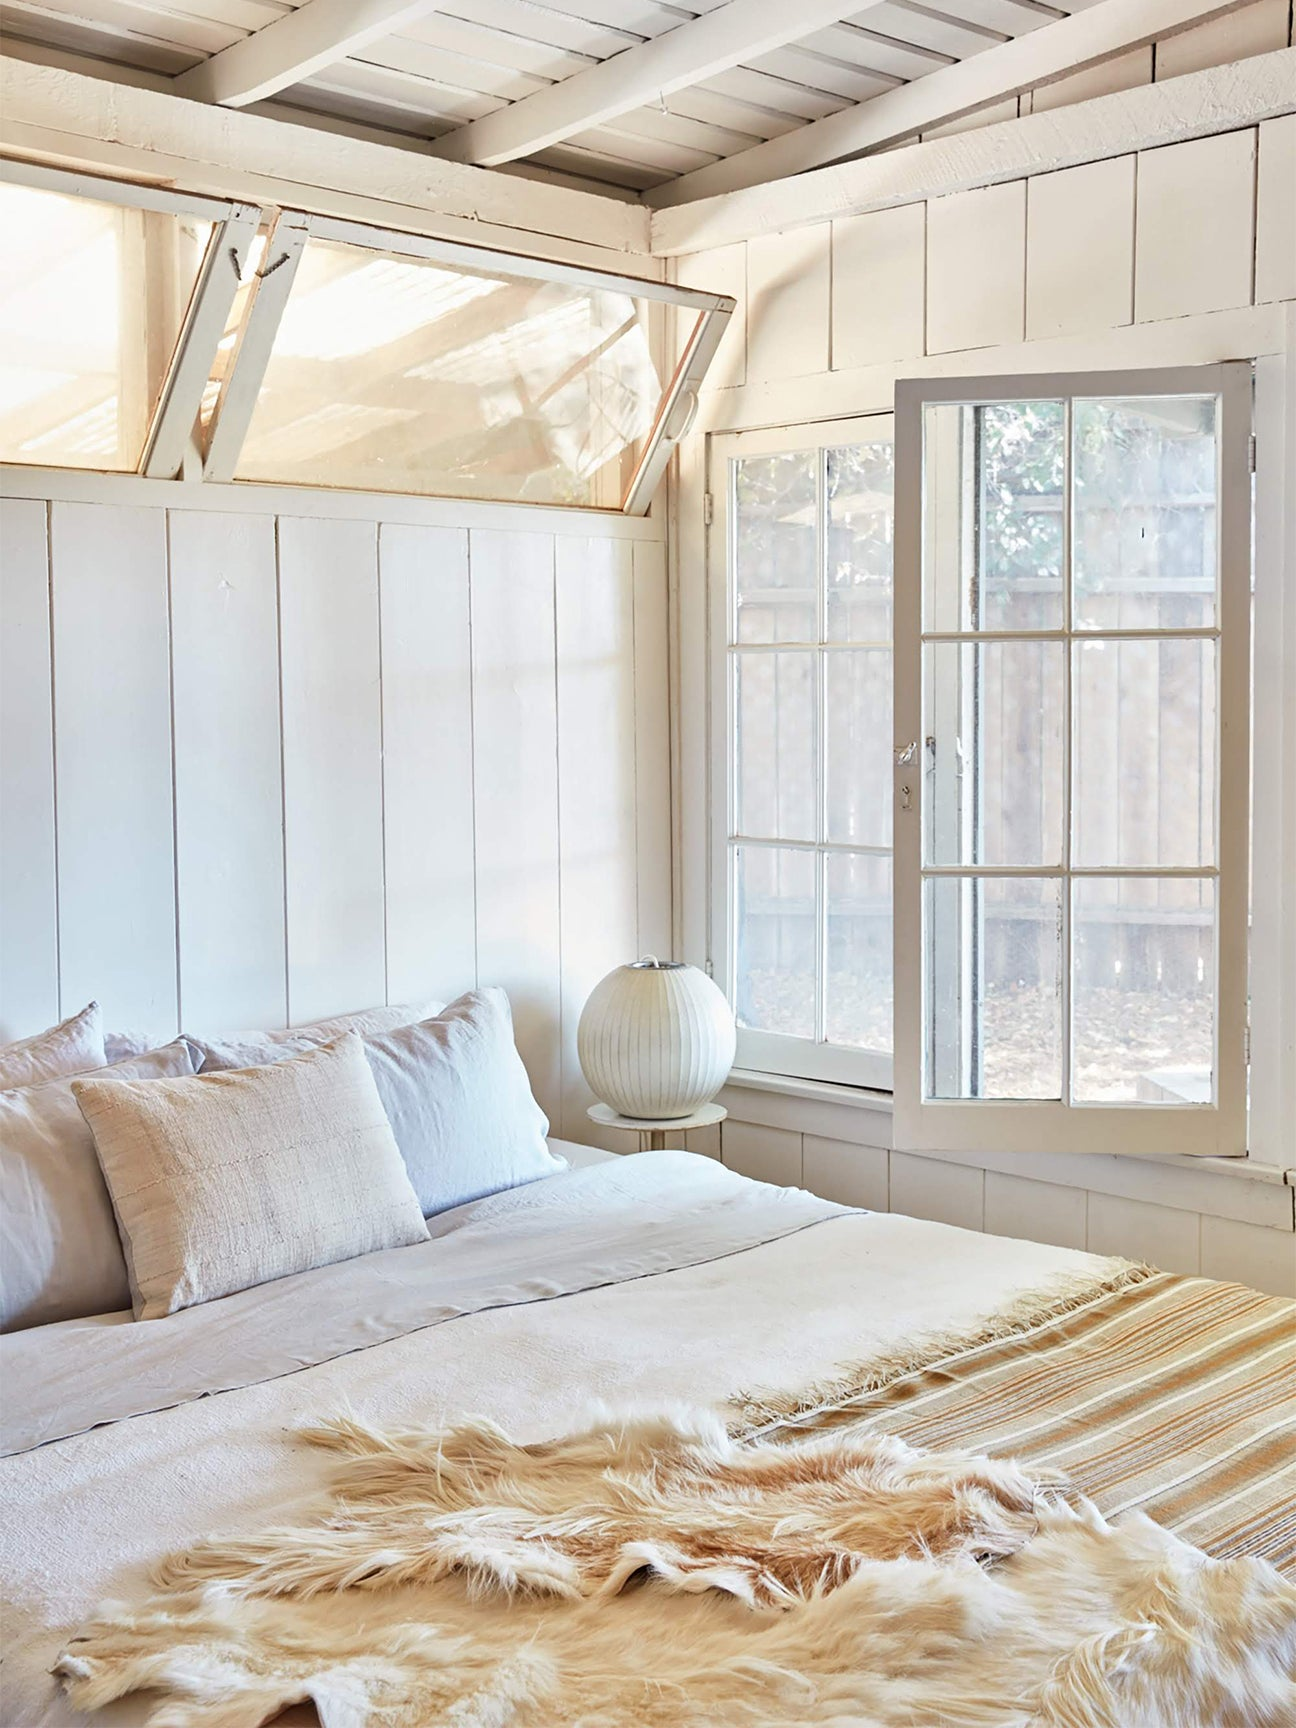 Small bedroom in shades of cream